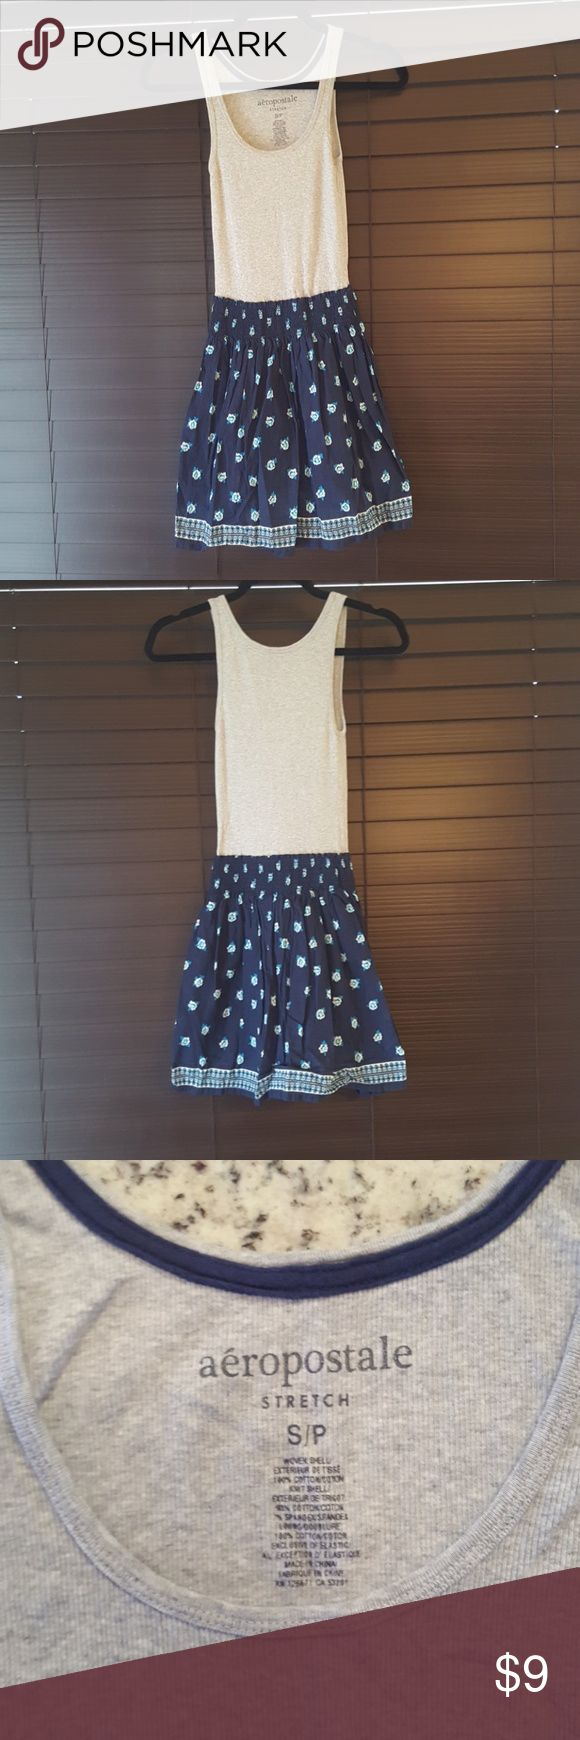 "Aeropostale Tank Top Dress - Small This Aeropostale tank top dress is perfect for the spring or summer time. Beautiful navy floral ""skirt"" makes it easy to dress up or down. Dress has lining.  ""Tank"" - 93% cotton/7% spandex ""Skirt"" - 100% cotton Lining - 100% cotton Aeropostale Dresses"